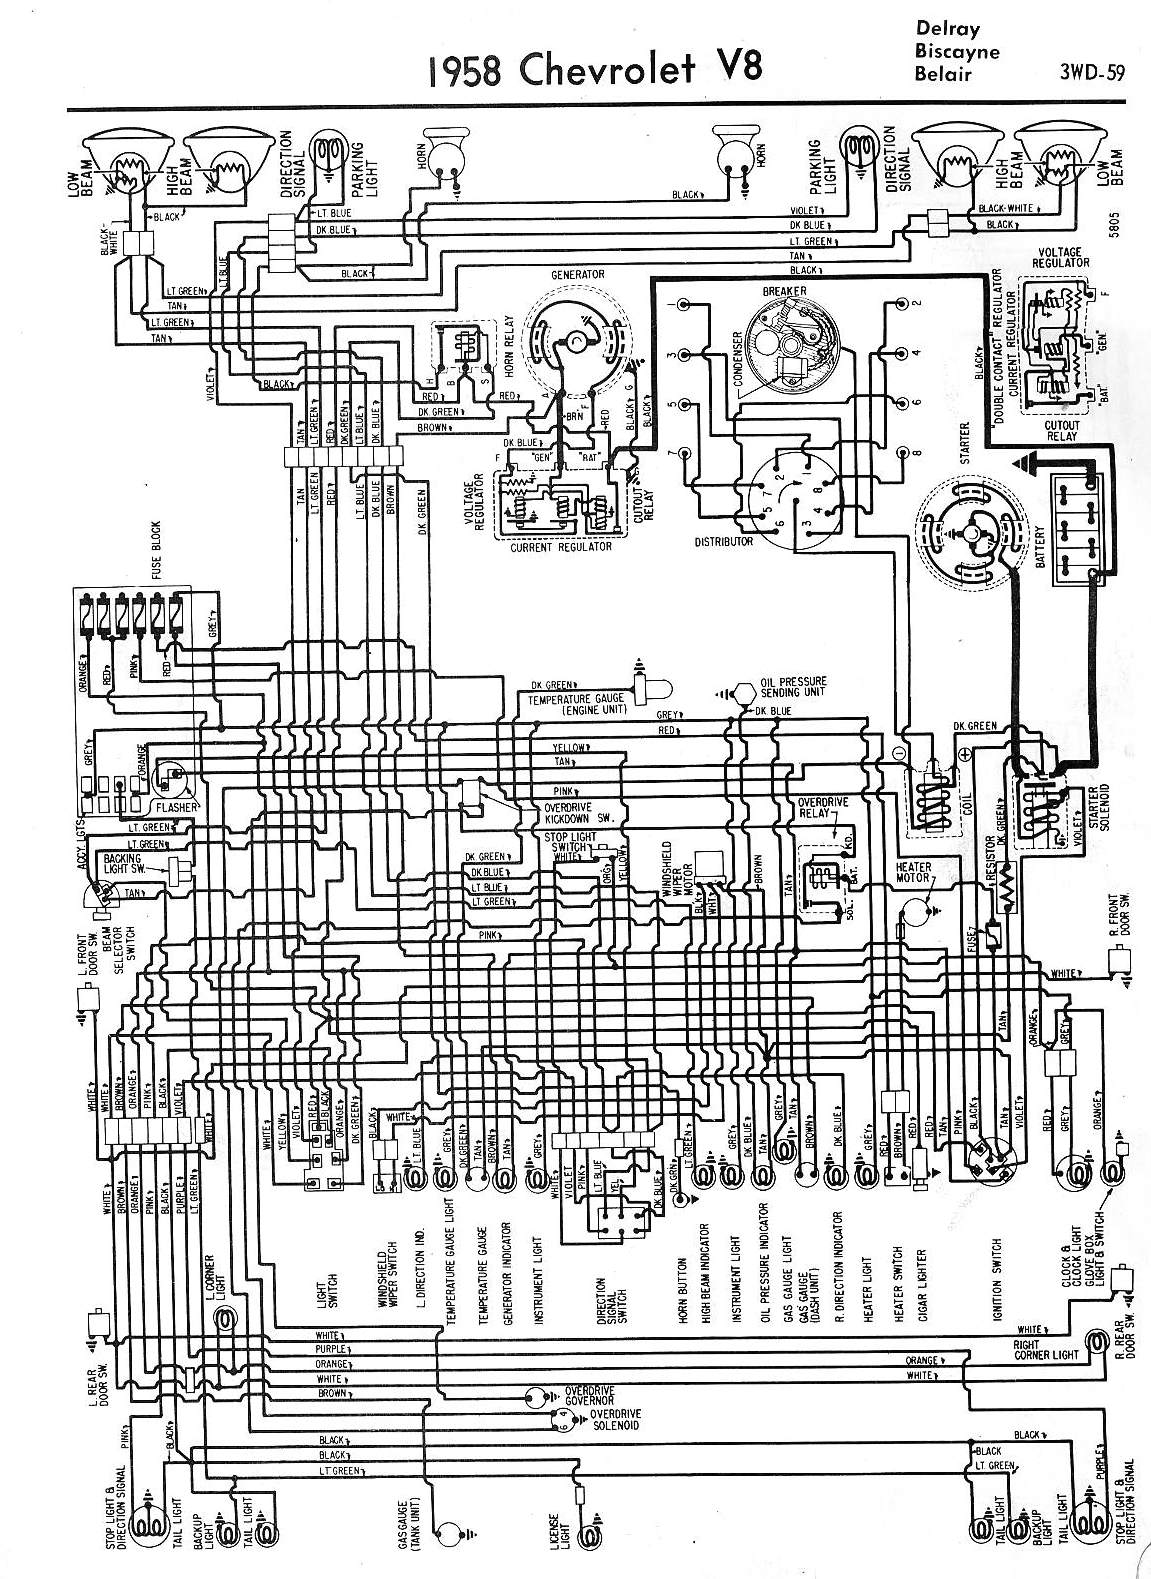 Amazing 1958 Chevrolet Wiring Diagrams 1958 Classic Chevrolet Wiring Cloud Picalendutblikvittorg